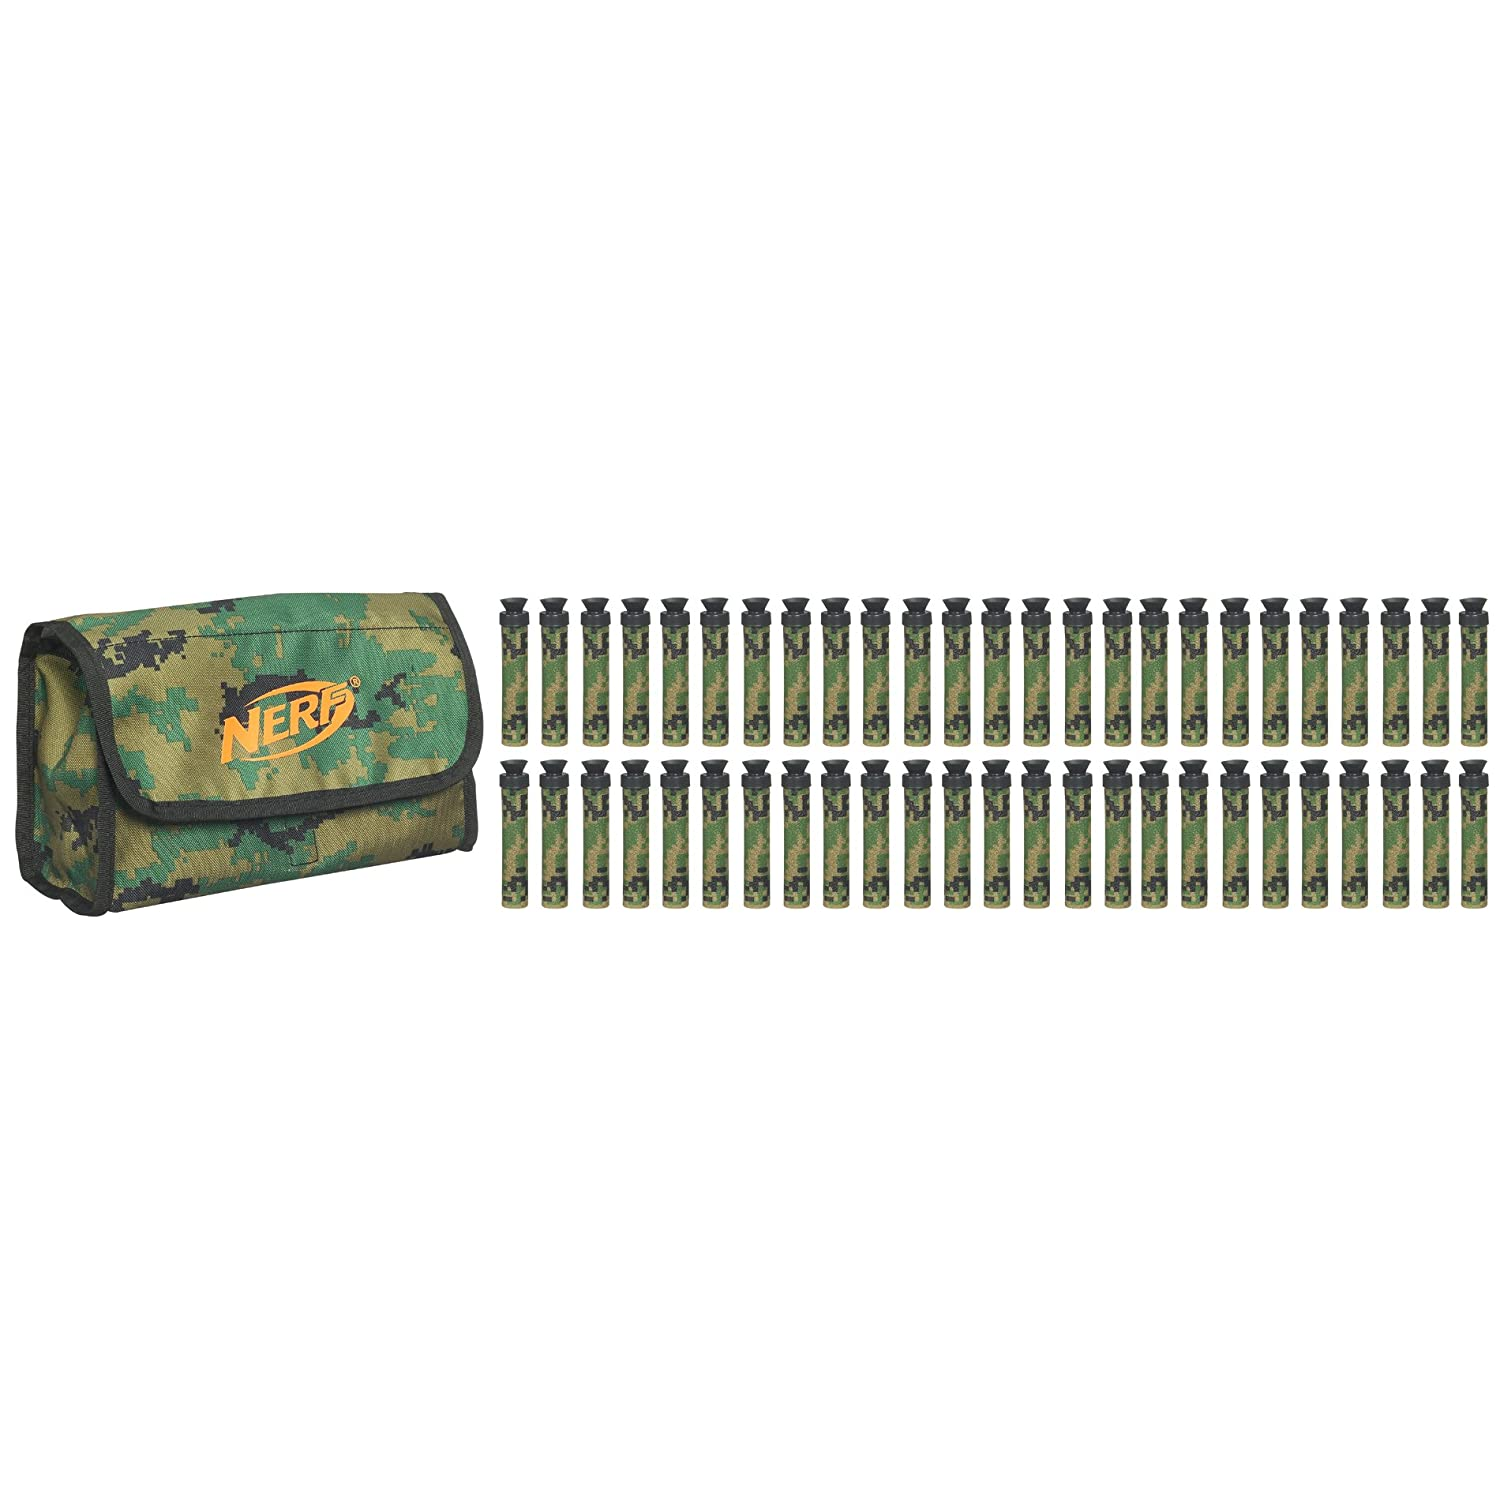 Nerf N-Strike Ammo Bag Kit - Green with Camouflage: Amazon.co.uk: Toys &  Games